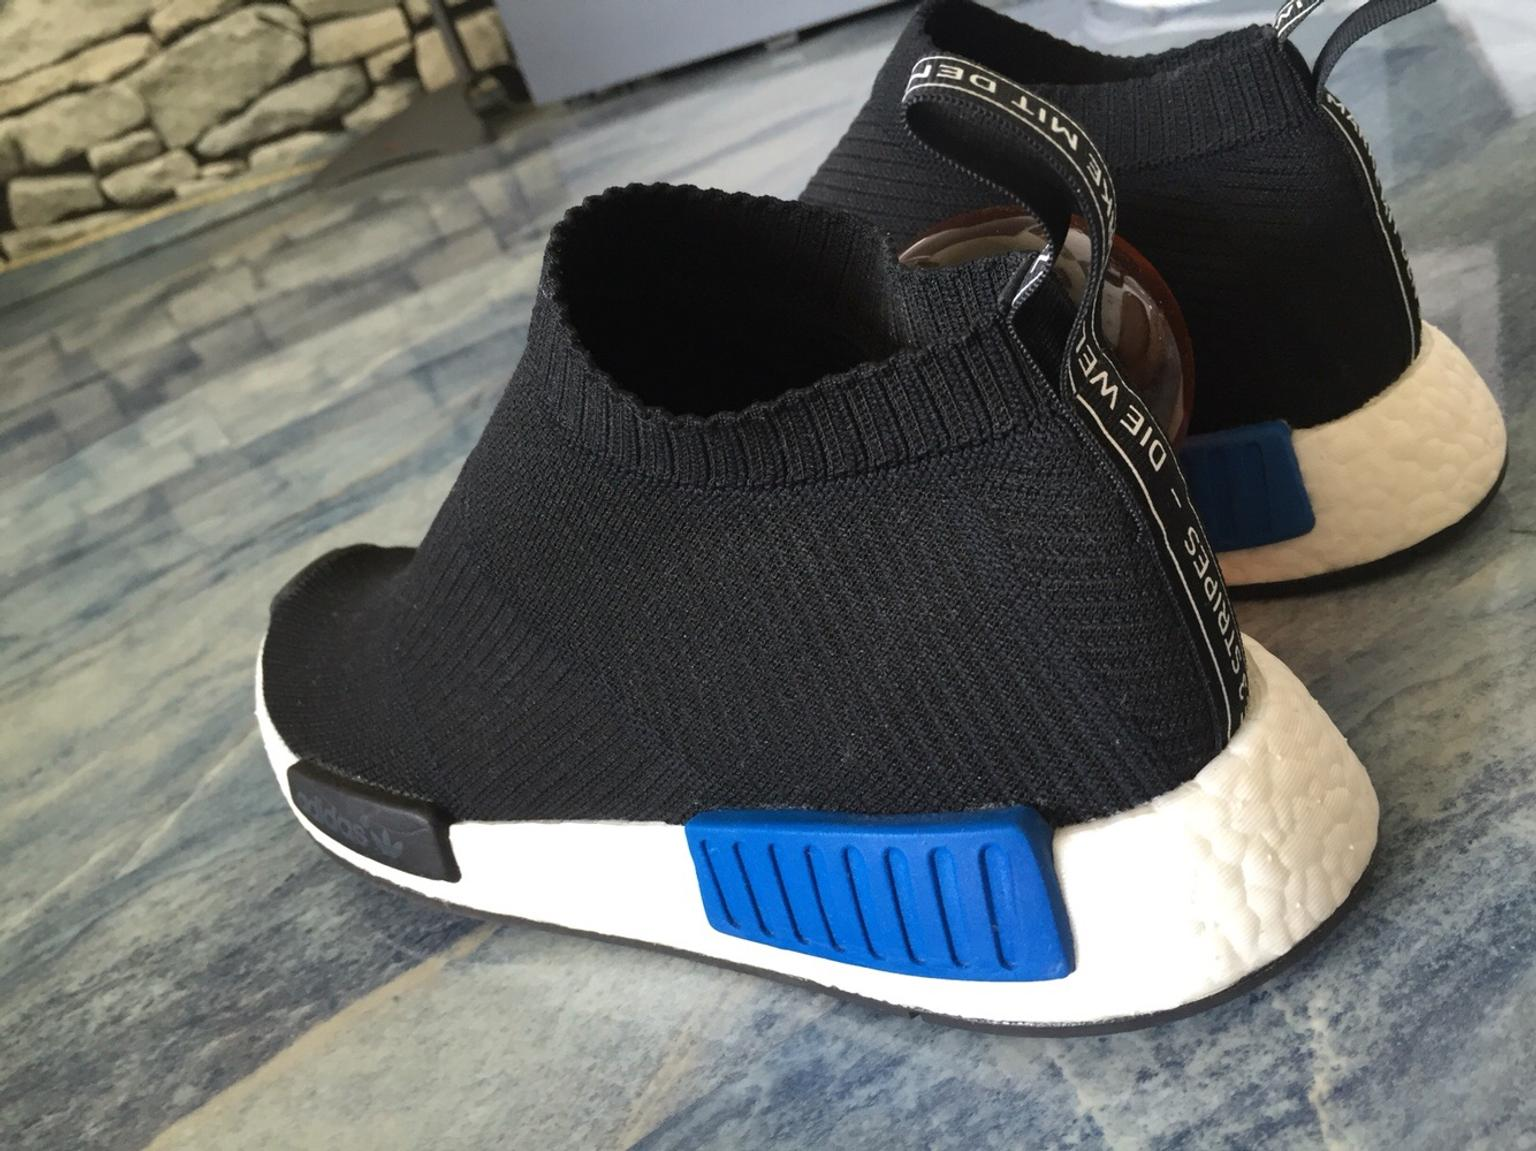 Adidas Nmd City Sock PK Black in 81927 München for ?170.00